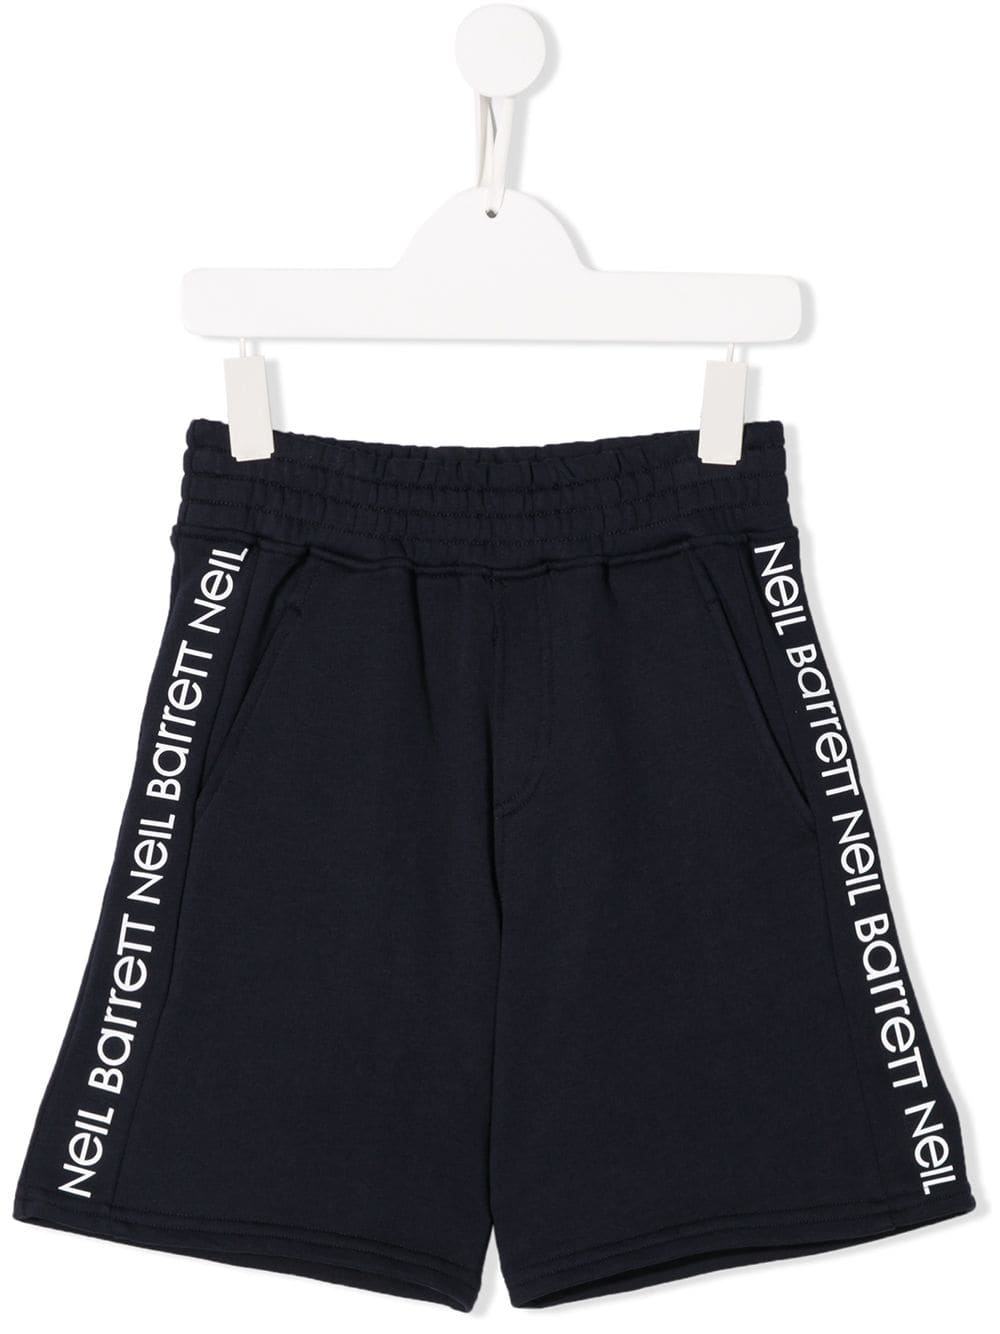 NEIL BARRETT KIDS logo print track shorts | Maison De Fashion